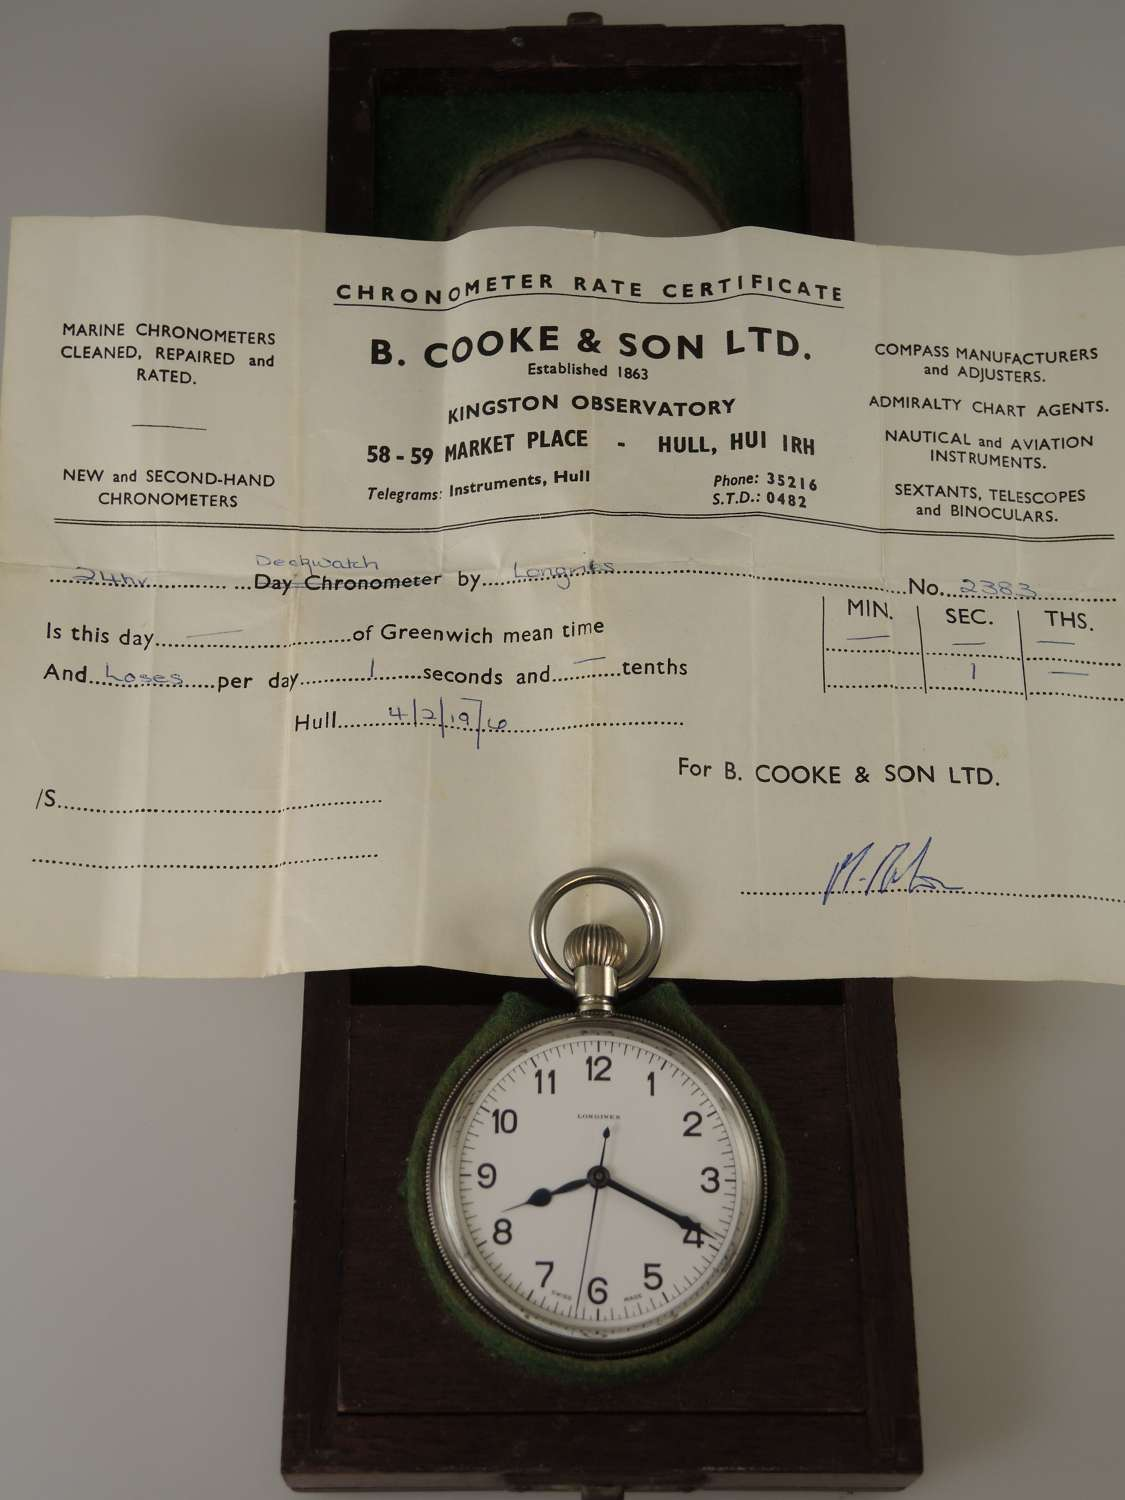 Longines Military HS 3 Deck watch with chronometer rate cert c1940